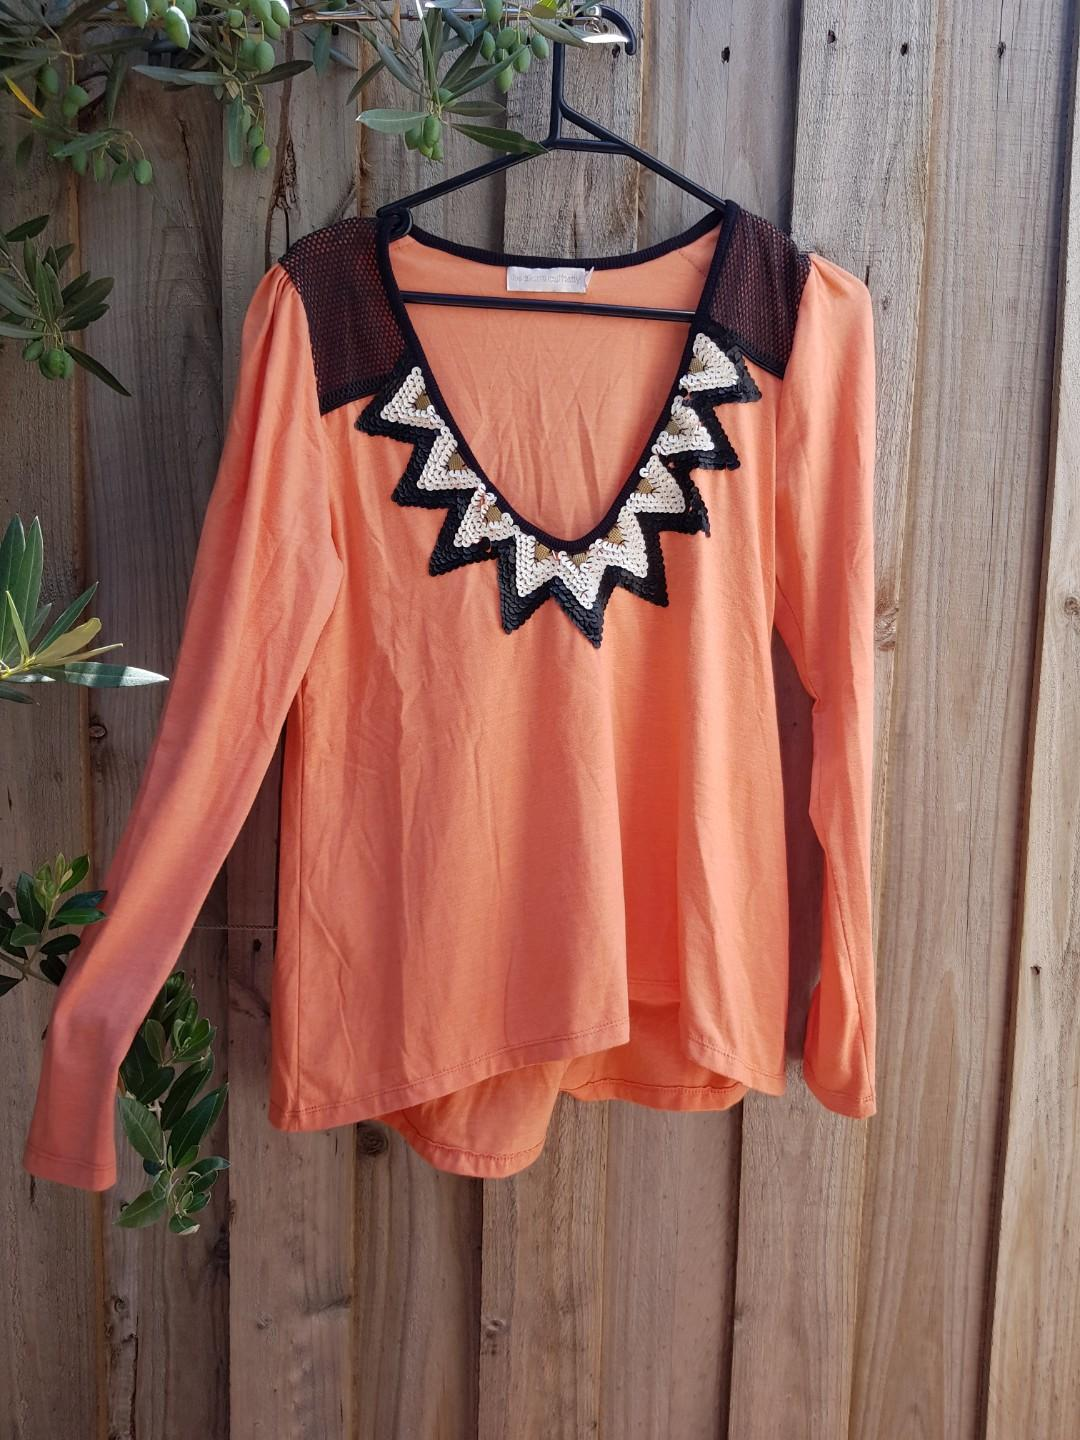 THE SHANTI BUTTERFLY orange top with sequin detail. Size 6-8